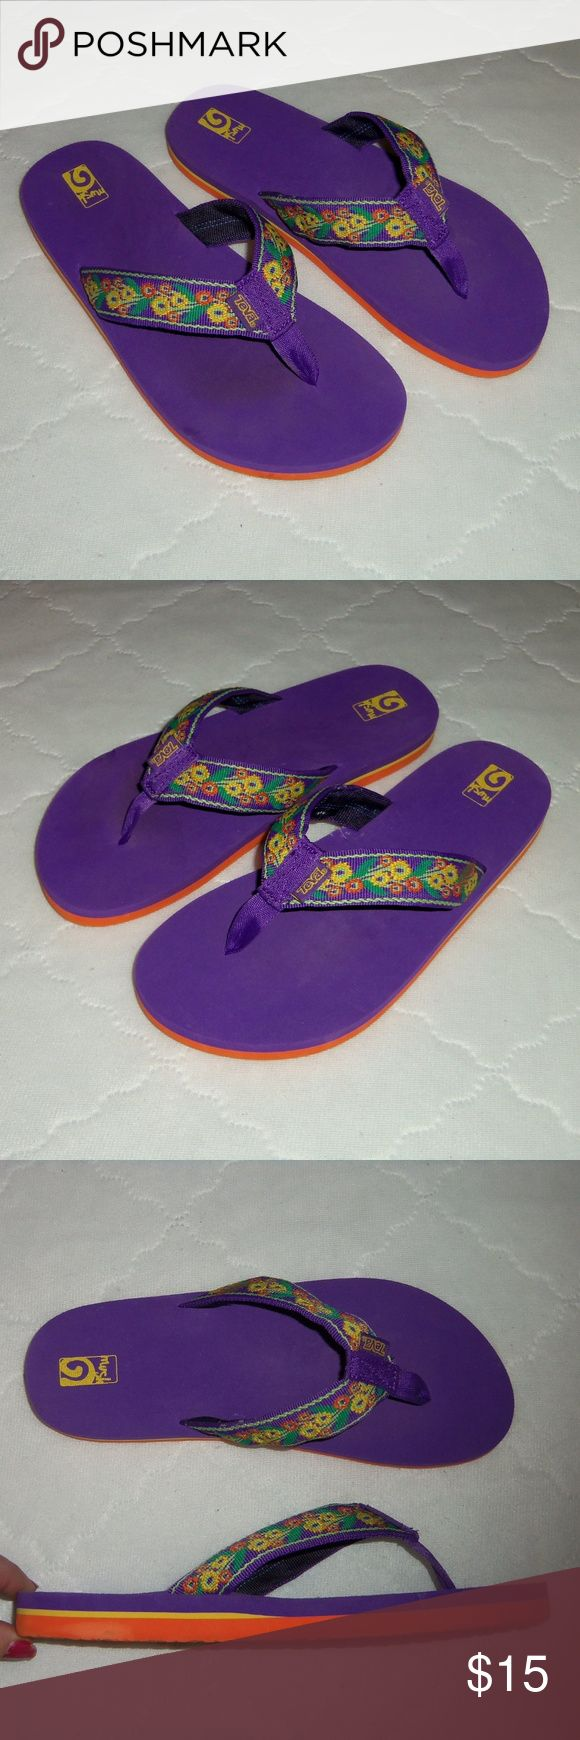 "Teva purple flip flops 7 EU 40 see description! Very cute pair of Teva mush sandals! Size inside states US 7 EUR 40, but they don't fit like a 7, they fit more like a ""9"" equivalent to the EUR 40 size. ( I wear an 8.5 and they are a little too big for me.)  Floral straps on upper. Excellent /mint condition! Teva Shoes Sandals"